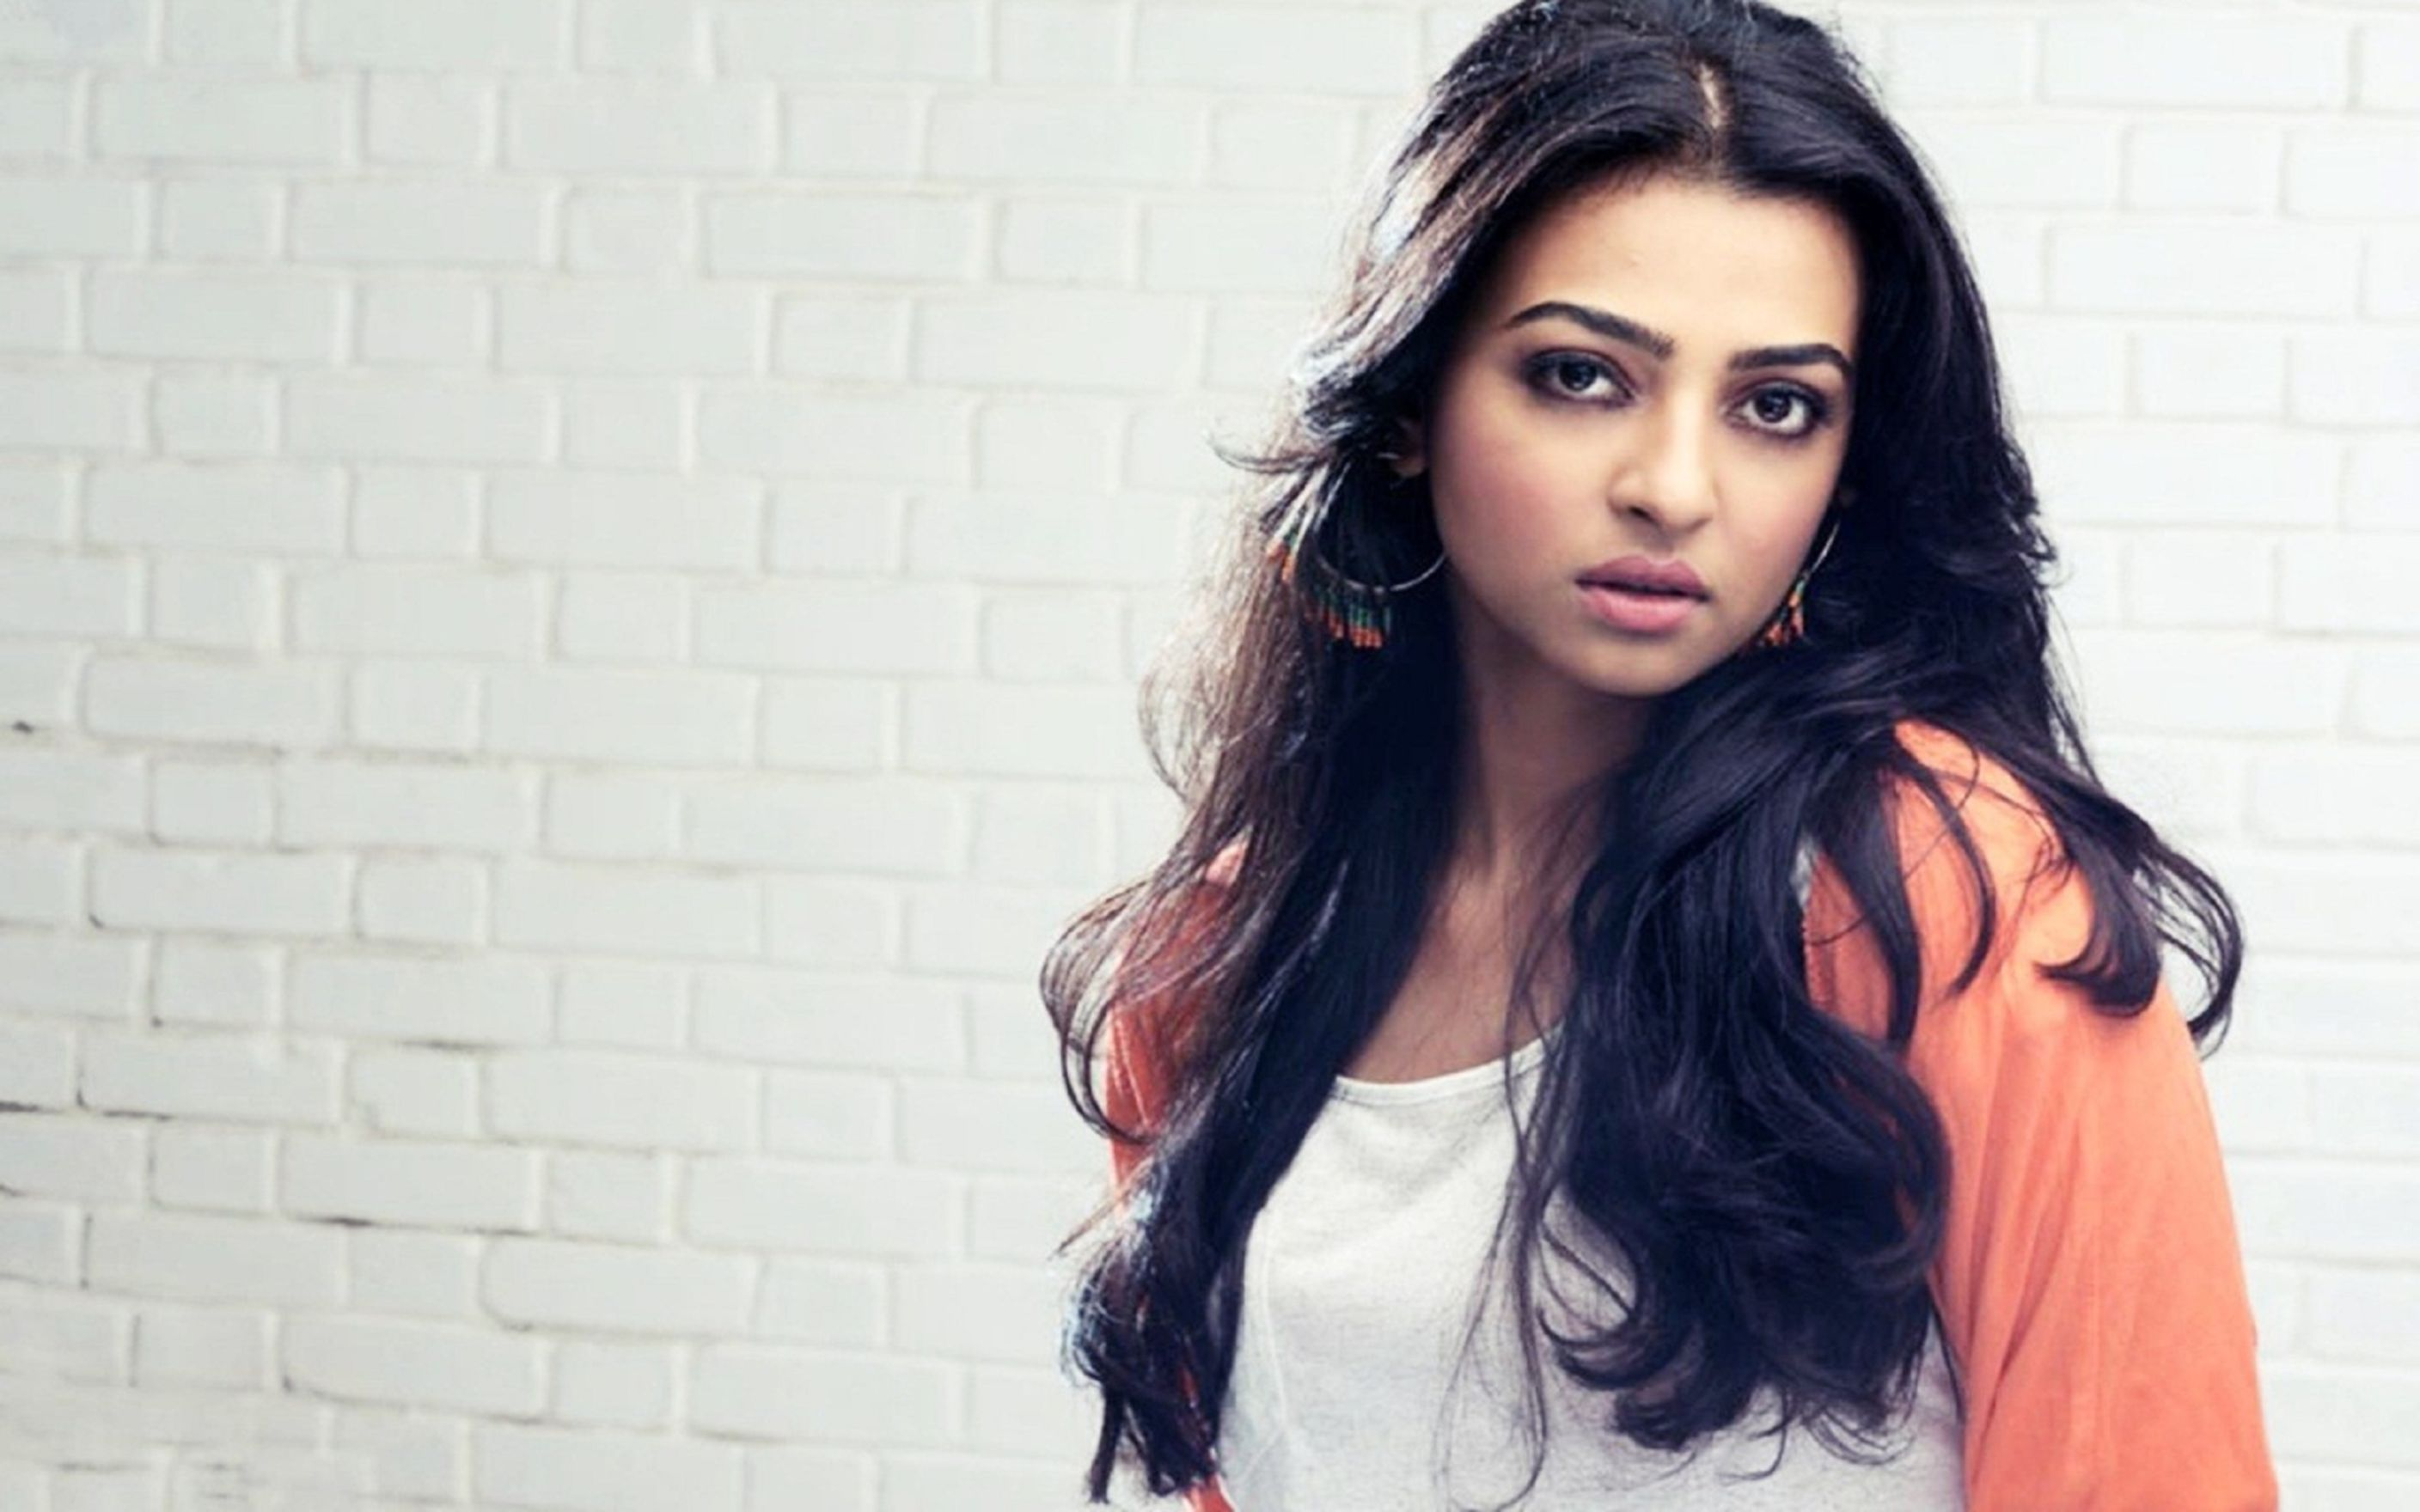 Download free HD Radhika Apte Hq Wallpaper, image